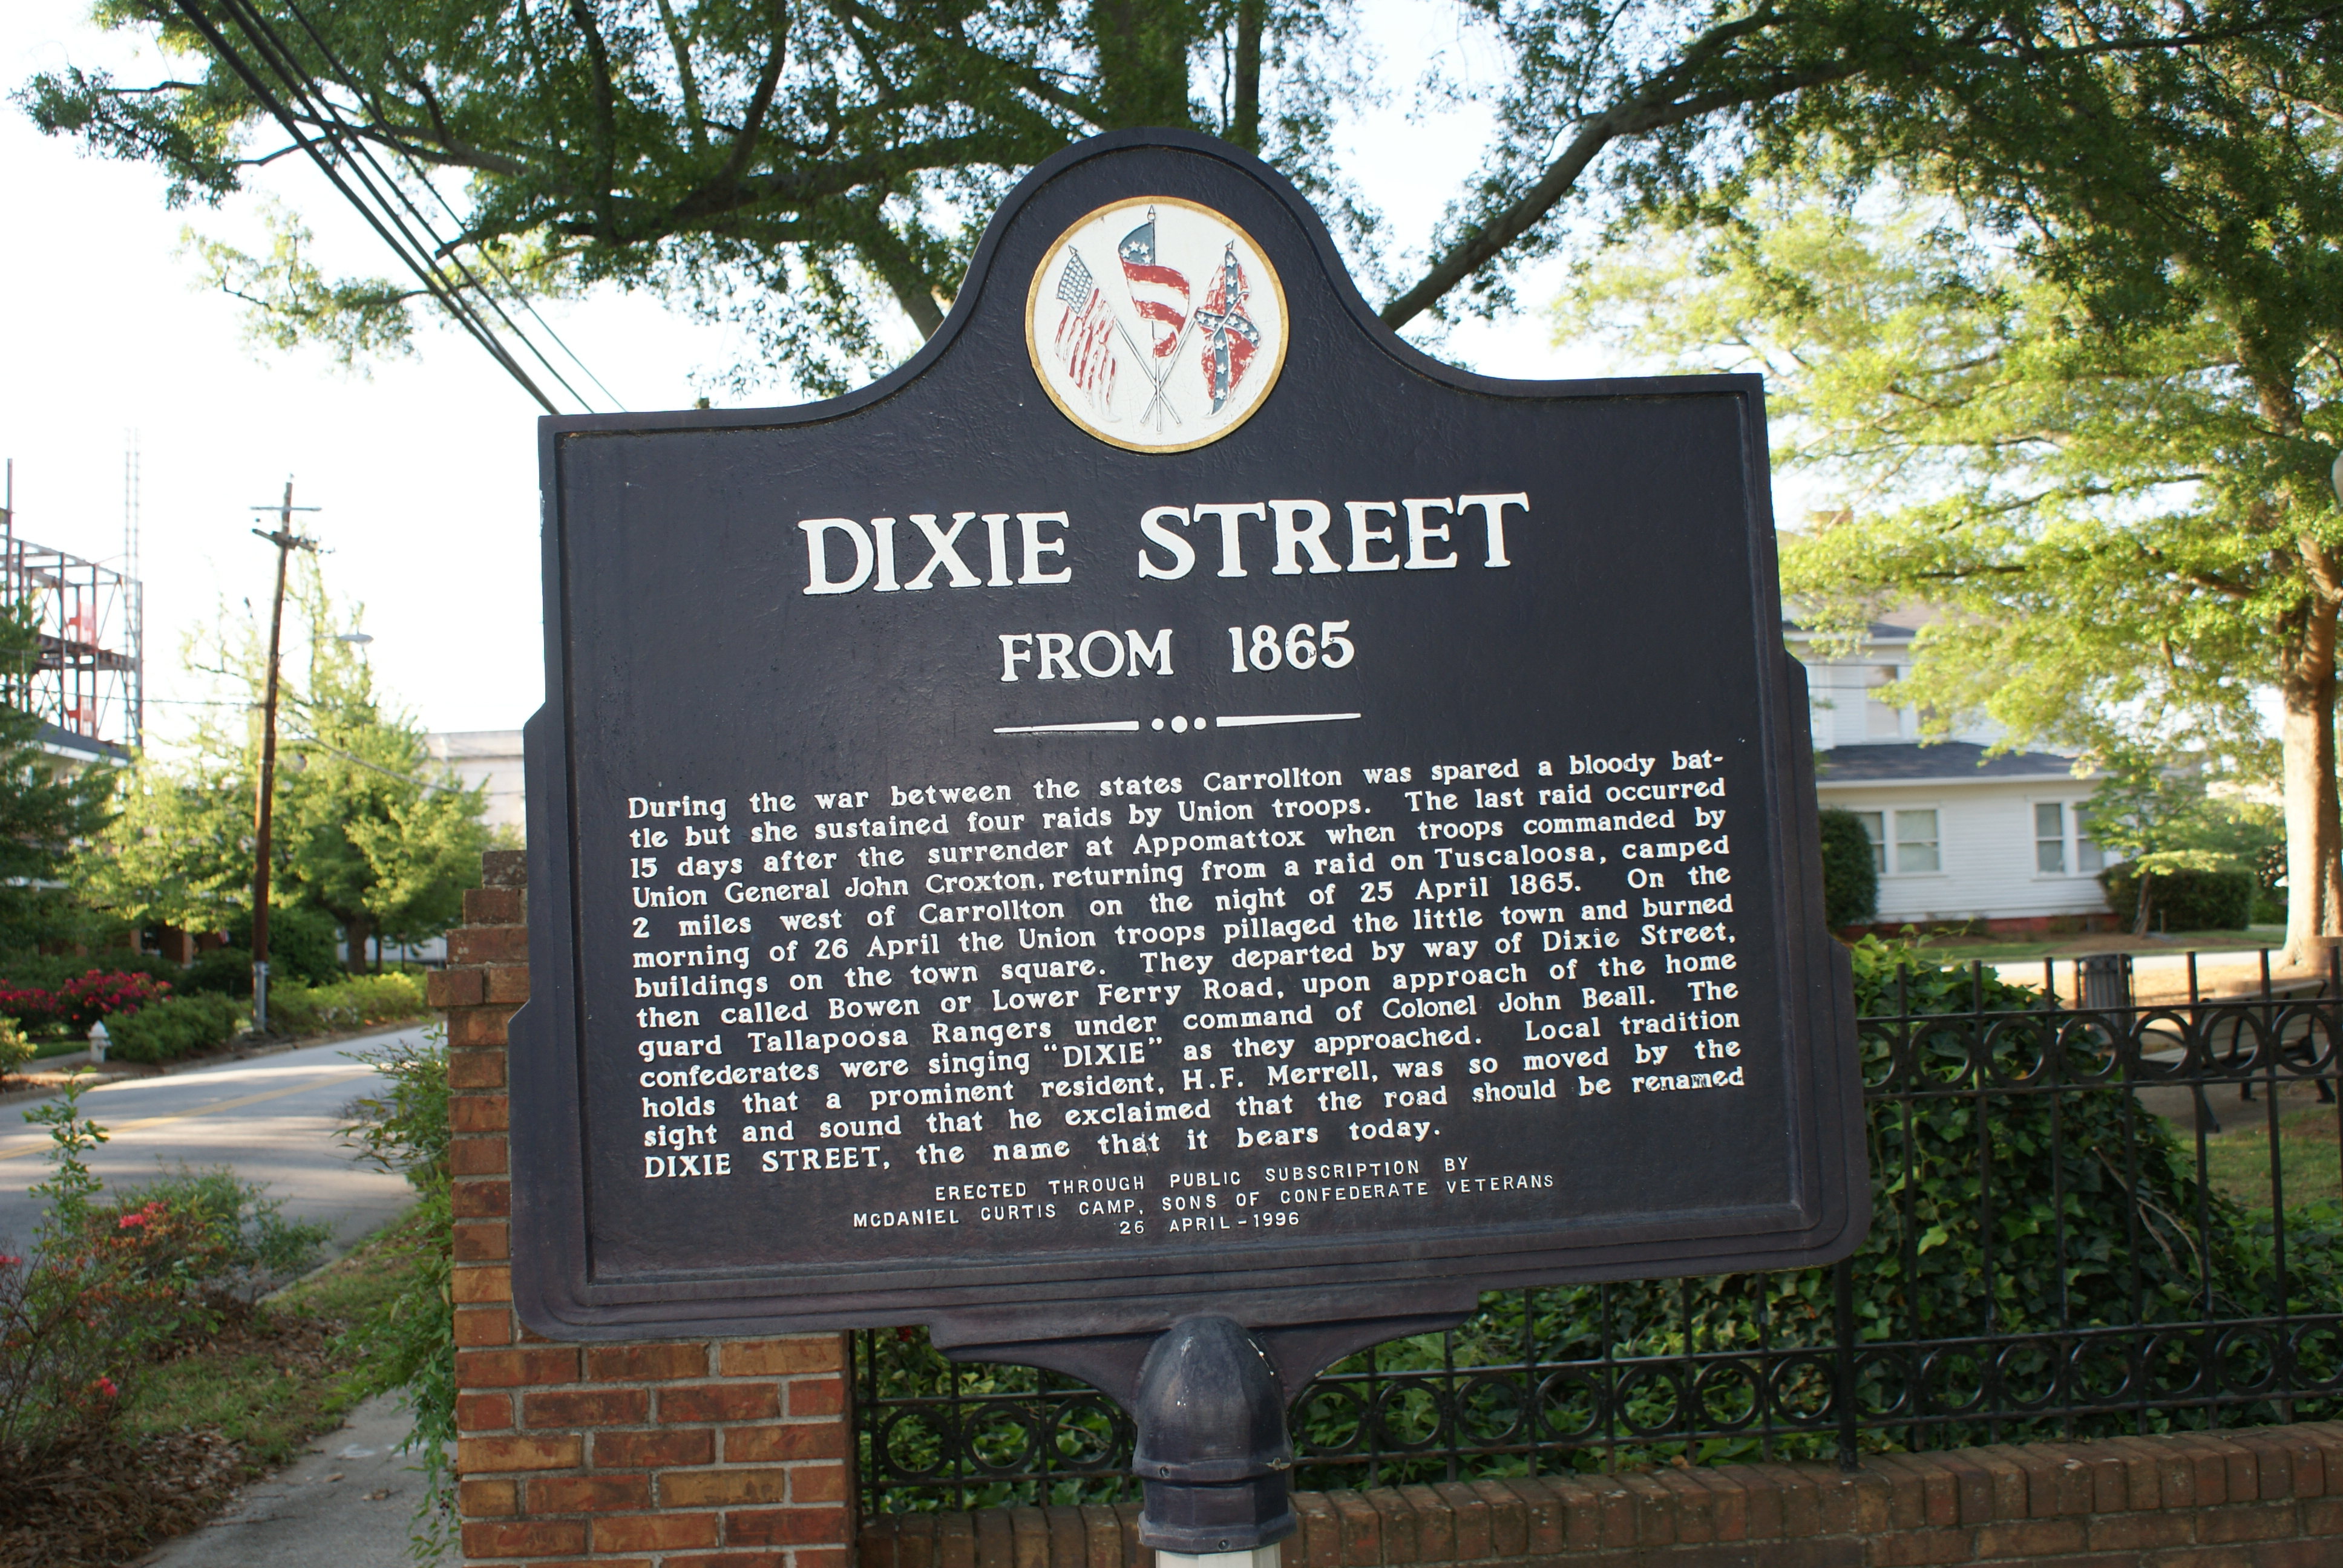 Dixie Street Historical Marker installed by the McDaniel Curtis Camp, Sons of Confederate Veterans, 1996.